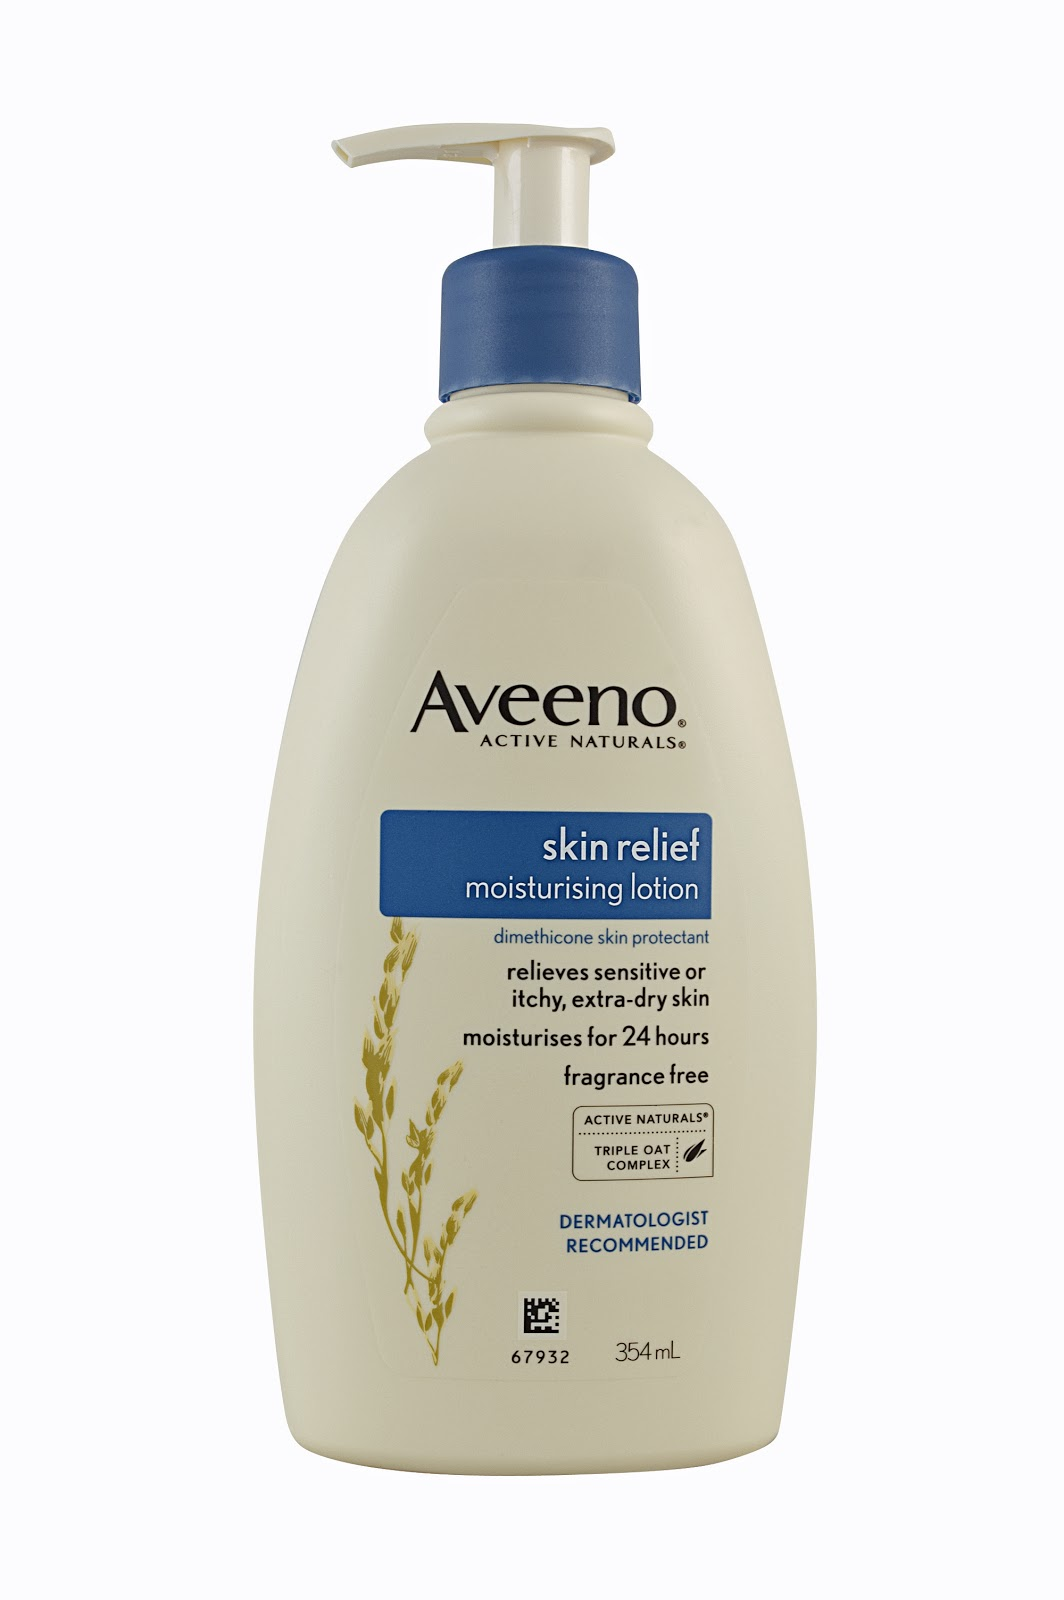 Total relief AVEENO has all the right ingredients